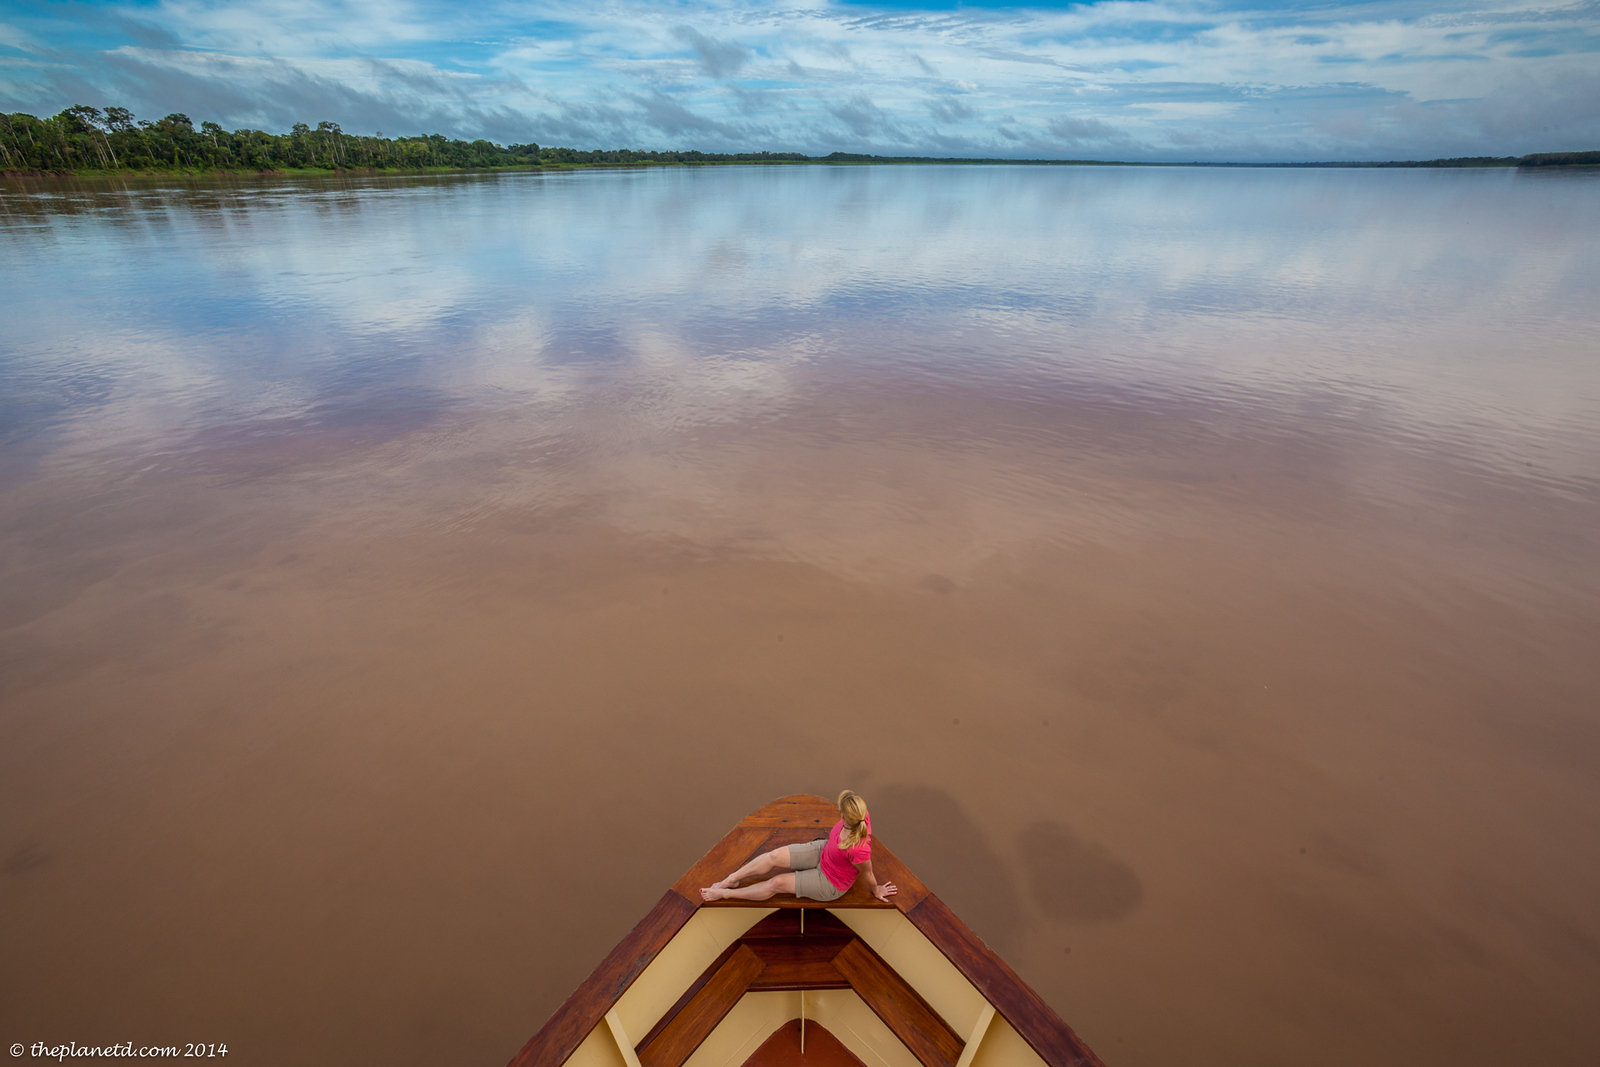 An epic view of the Amazon.